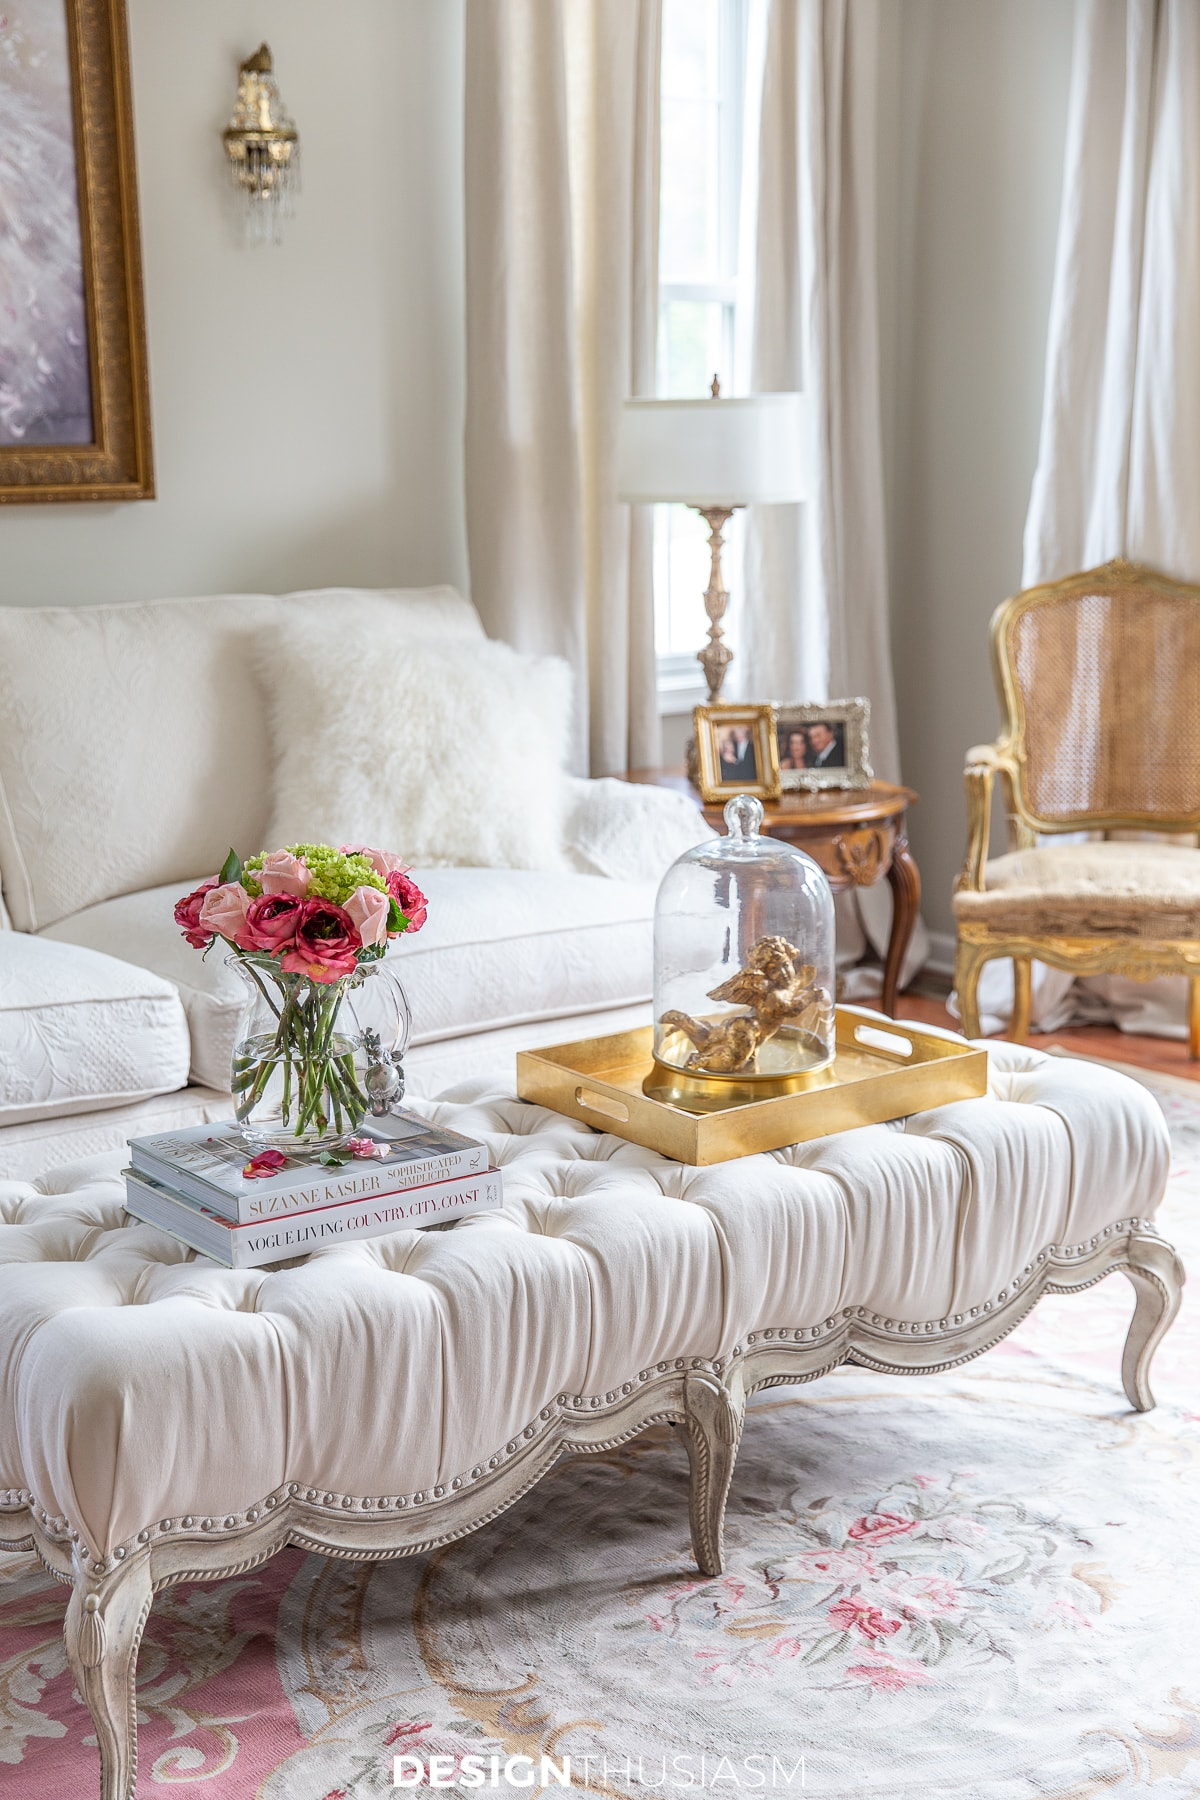 Are You Over Decorating? Home Decor Tips to Simplify Your Space